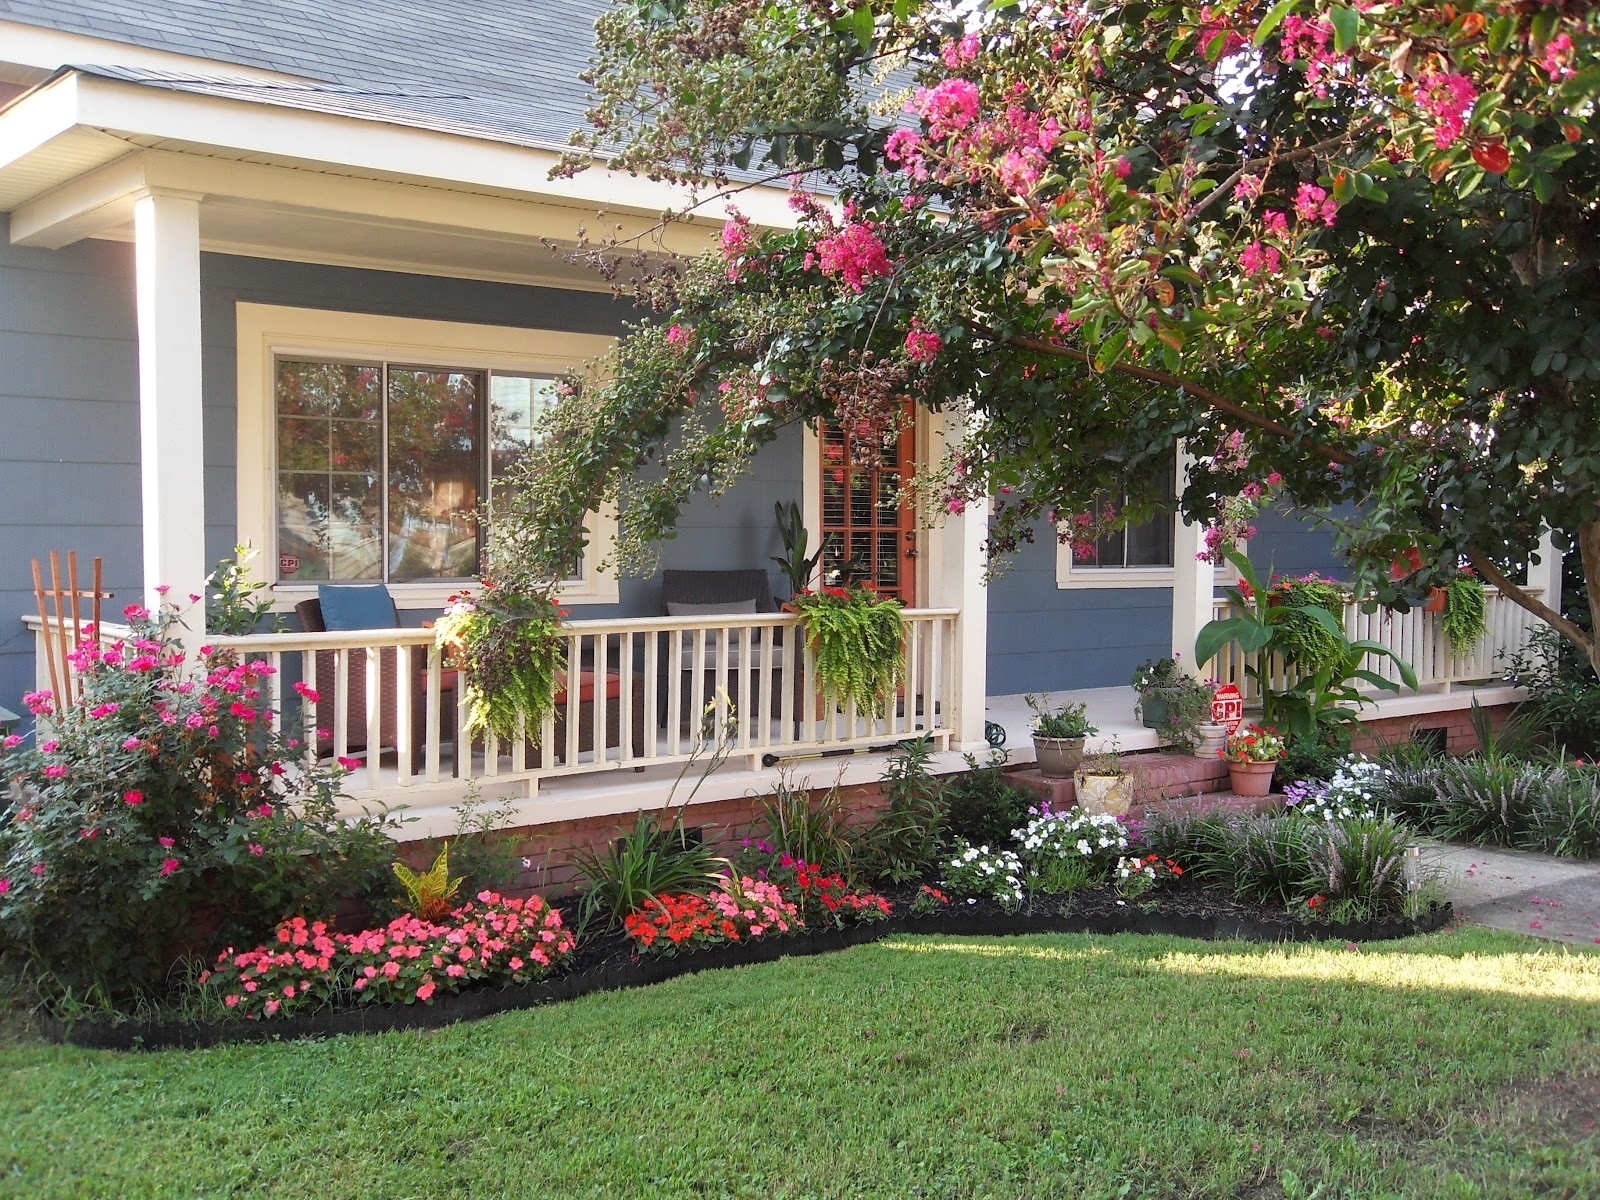 Image of: Front Landscaping Beautiful Design Create A Front Yard Landscaping In Front Yard Landscaping Plans Smart Front Yard Landscaping Plans